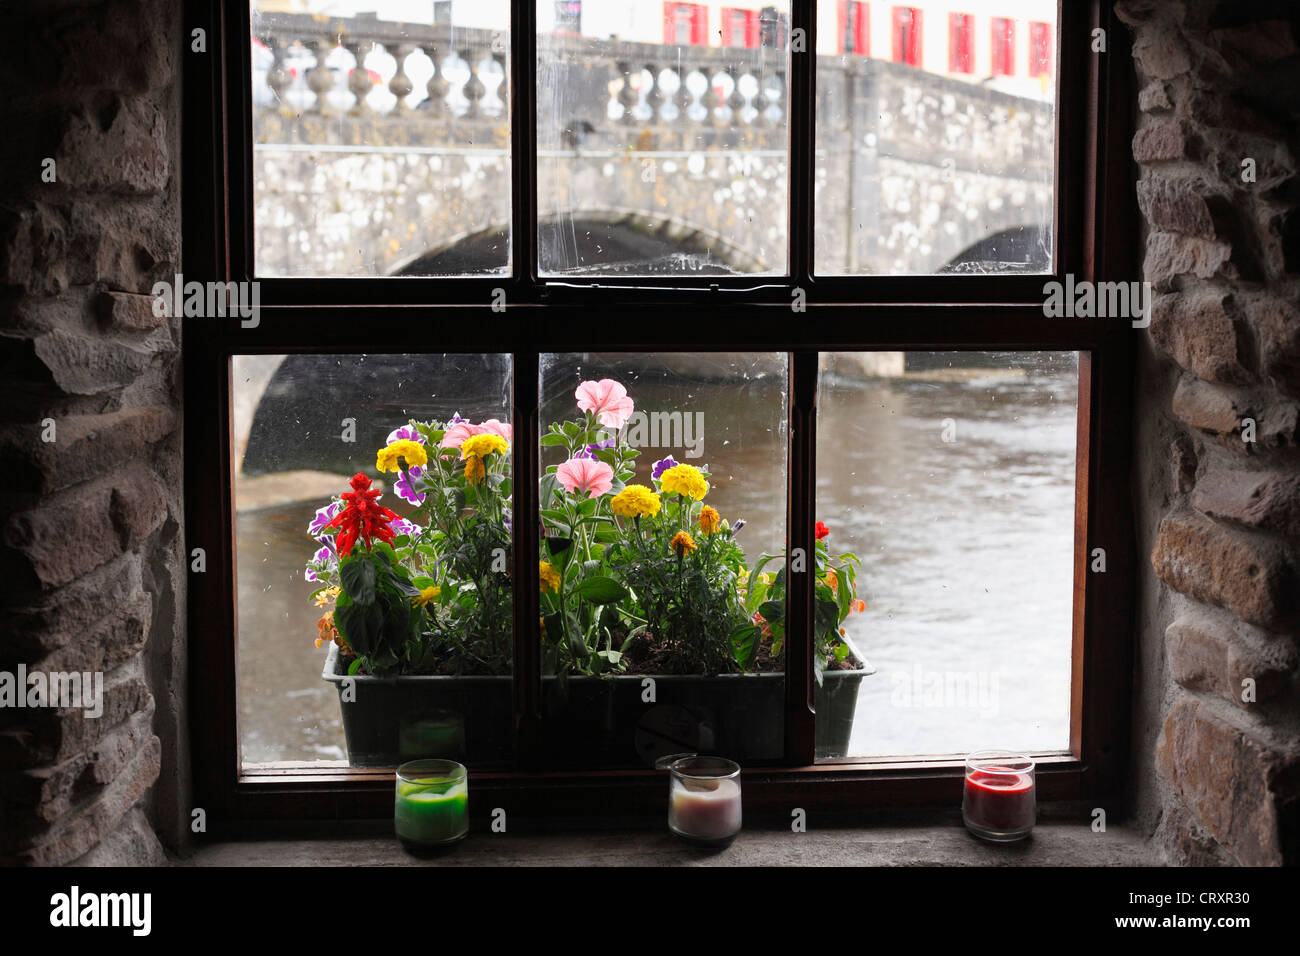 Ireland, Connacht, County Roscommon, View of cafe - Stock Image